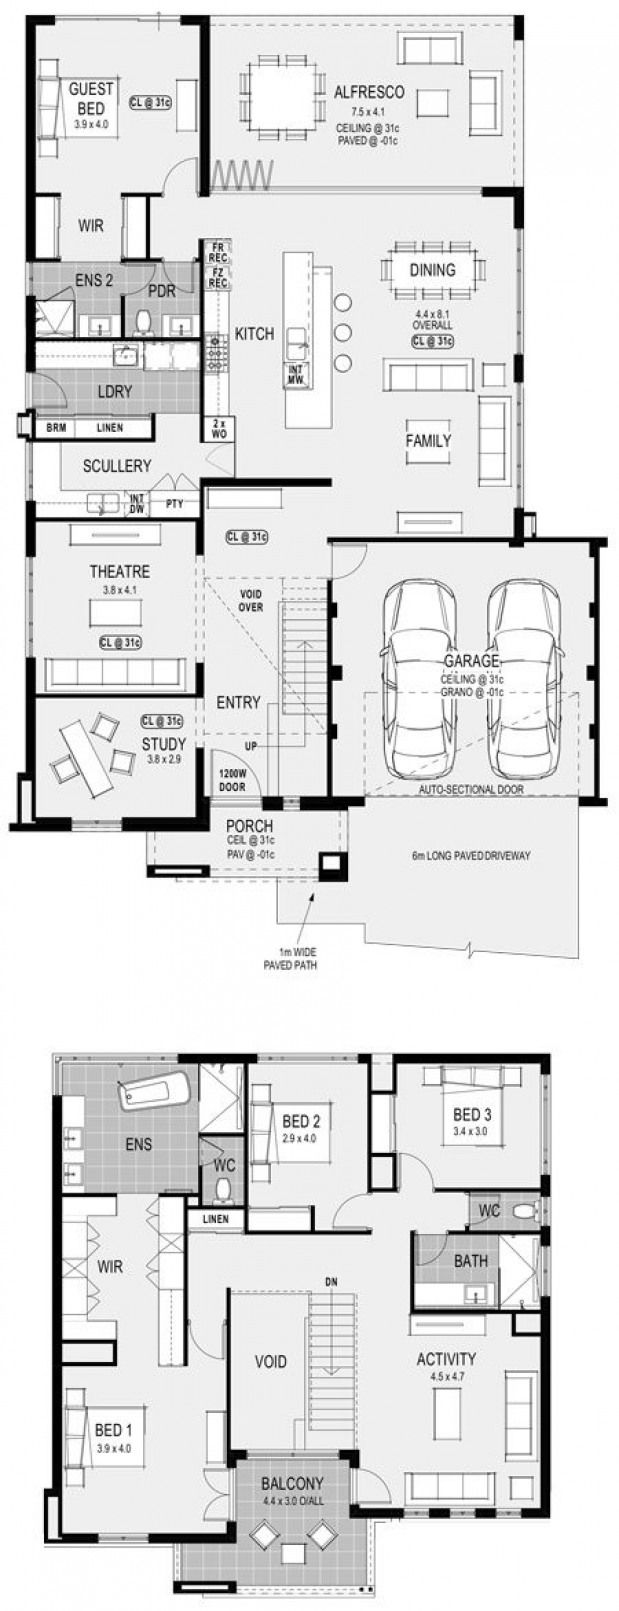 Georgia Platinum Floorplan Agriculture Agriculture Tattoo New House Plans Home Design Floor Plans Double Story House